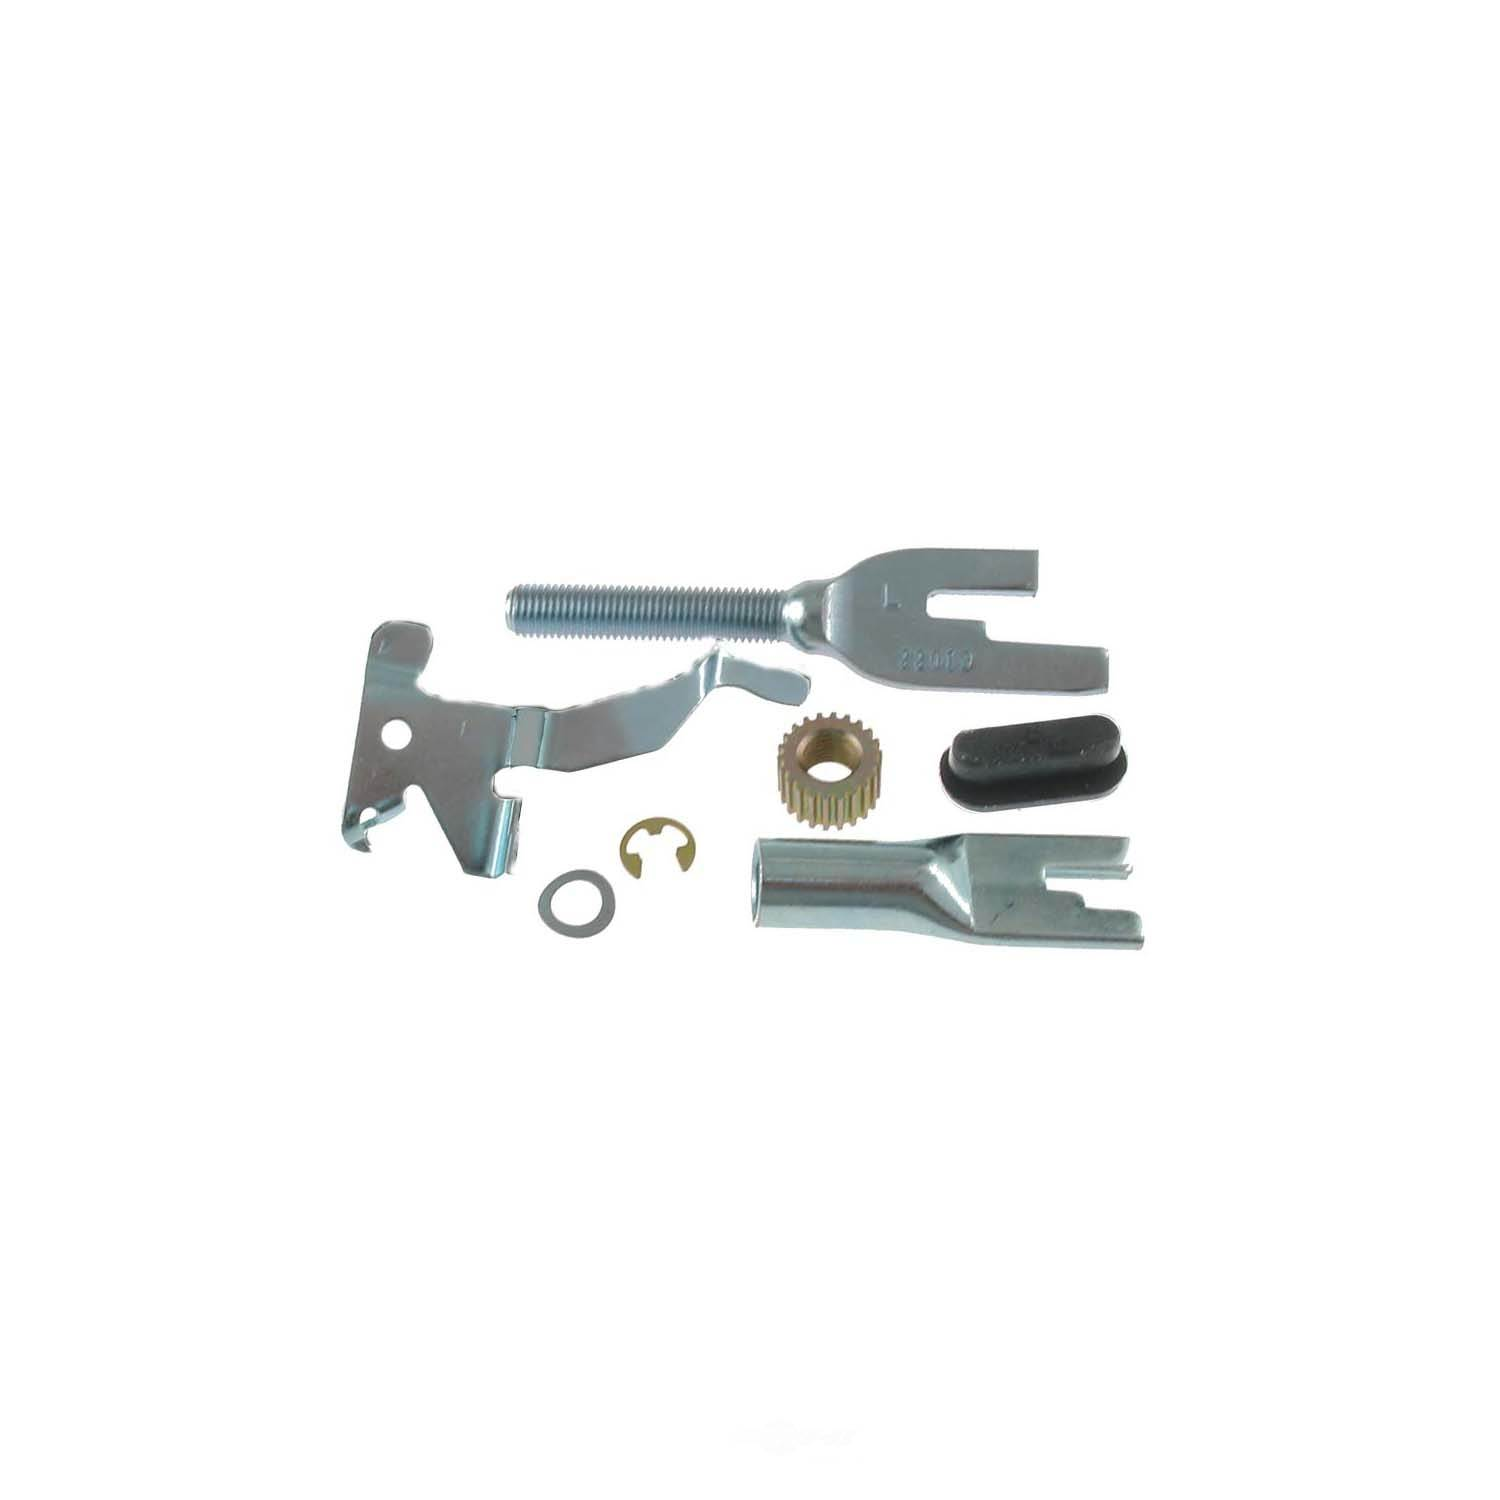 CARLSON QUALITY BRAKE PARTS - Drum Brake Self Adjuster Repair Kit (Rear Left) - CRL H2658